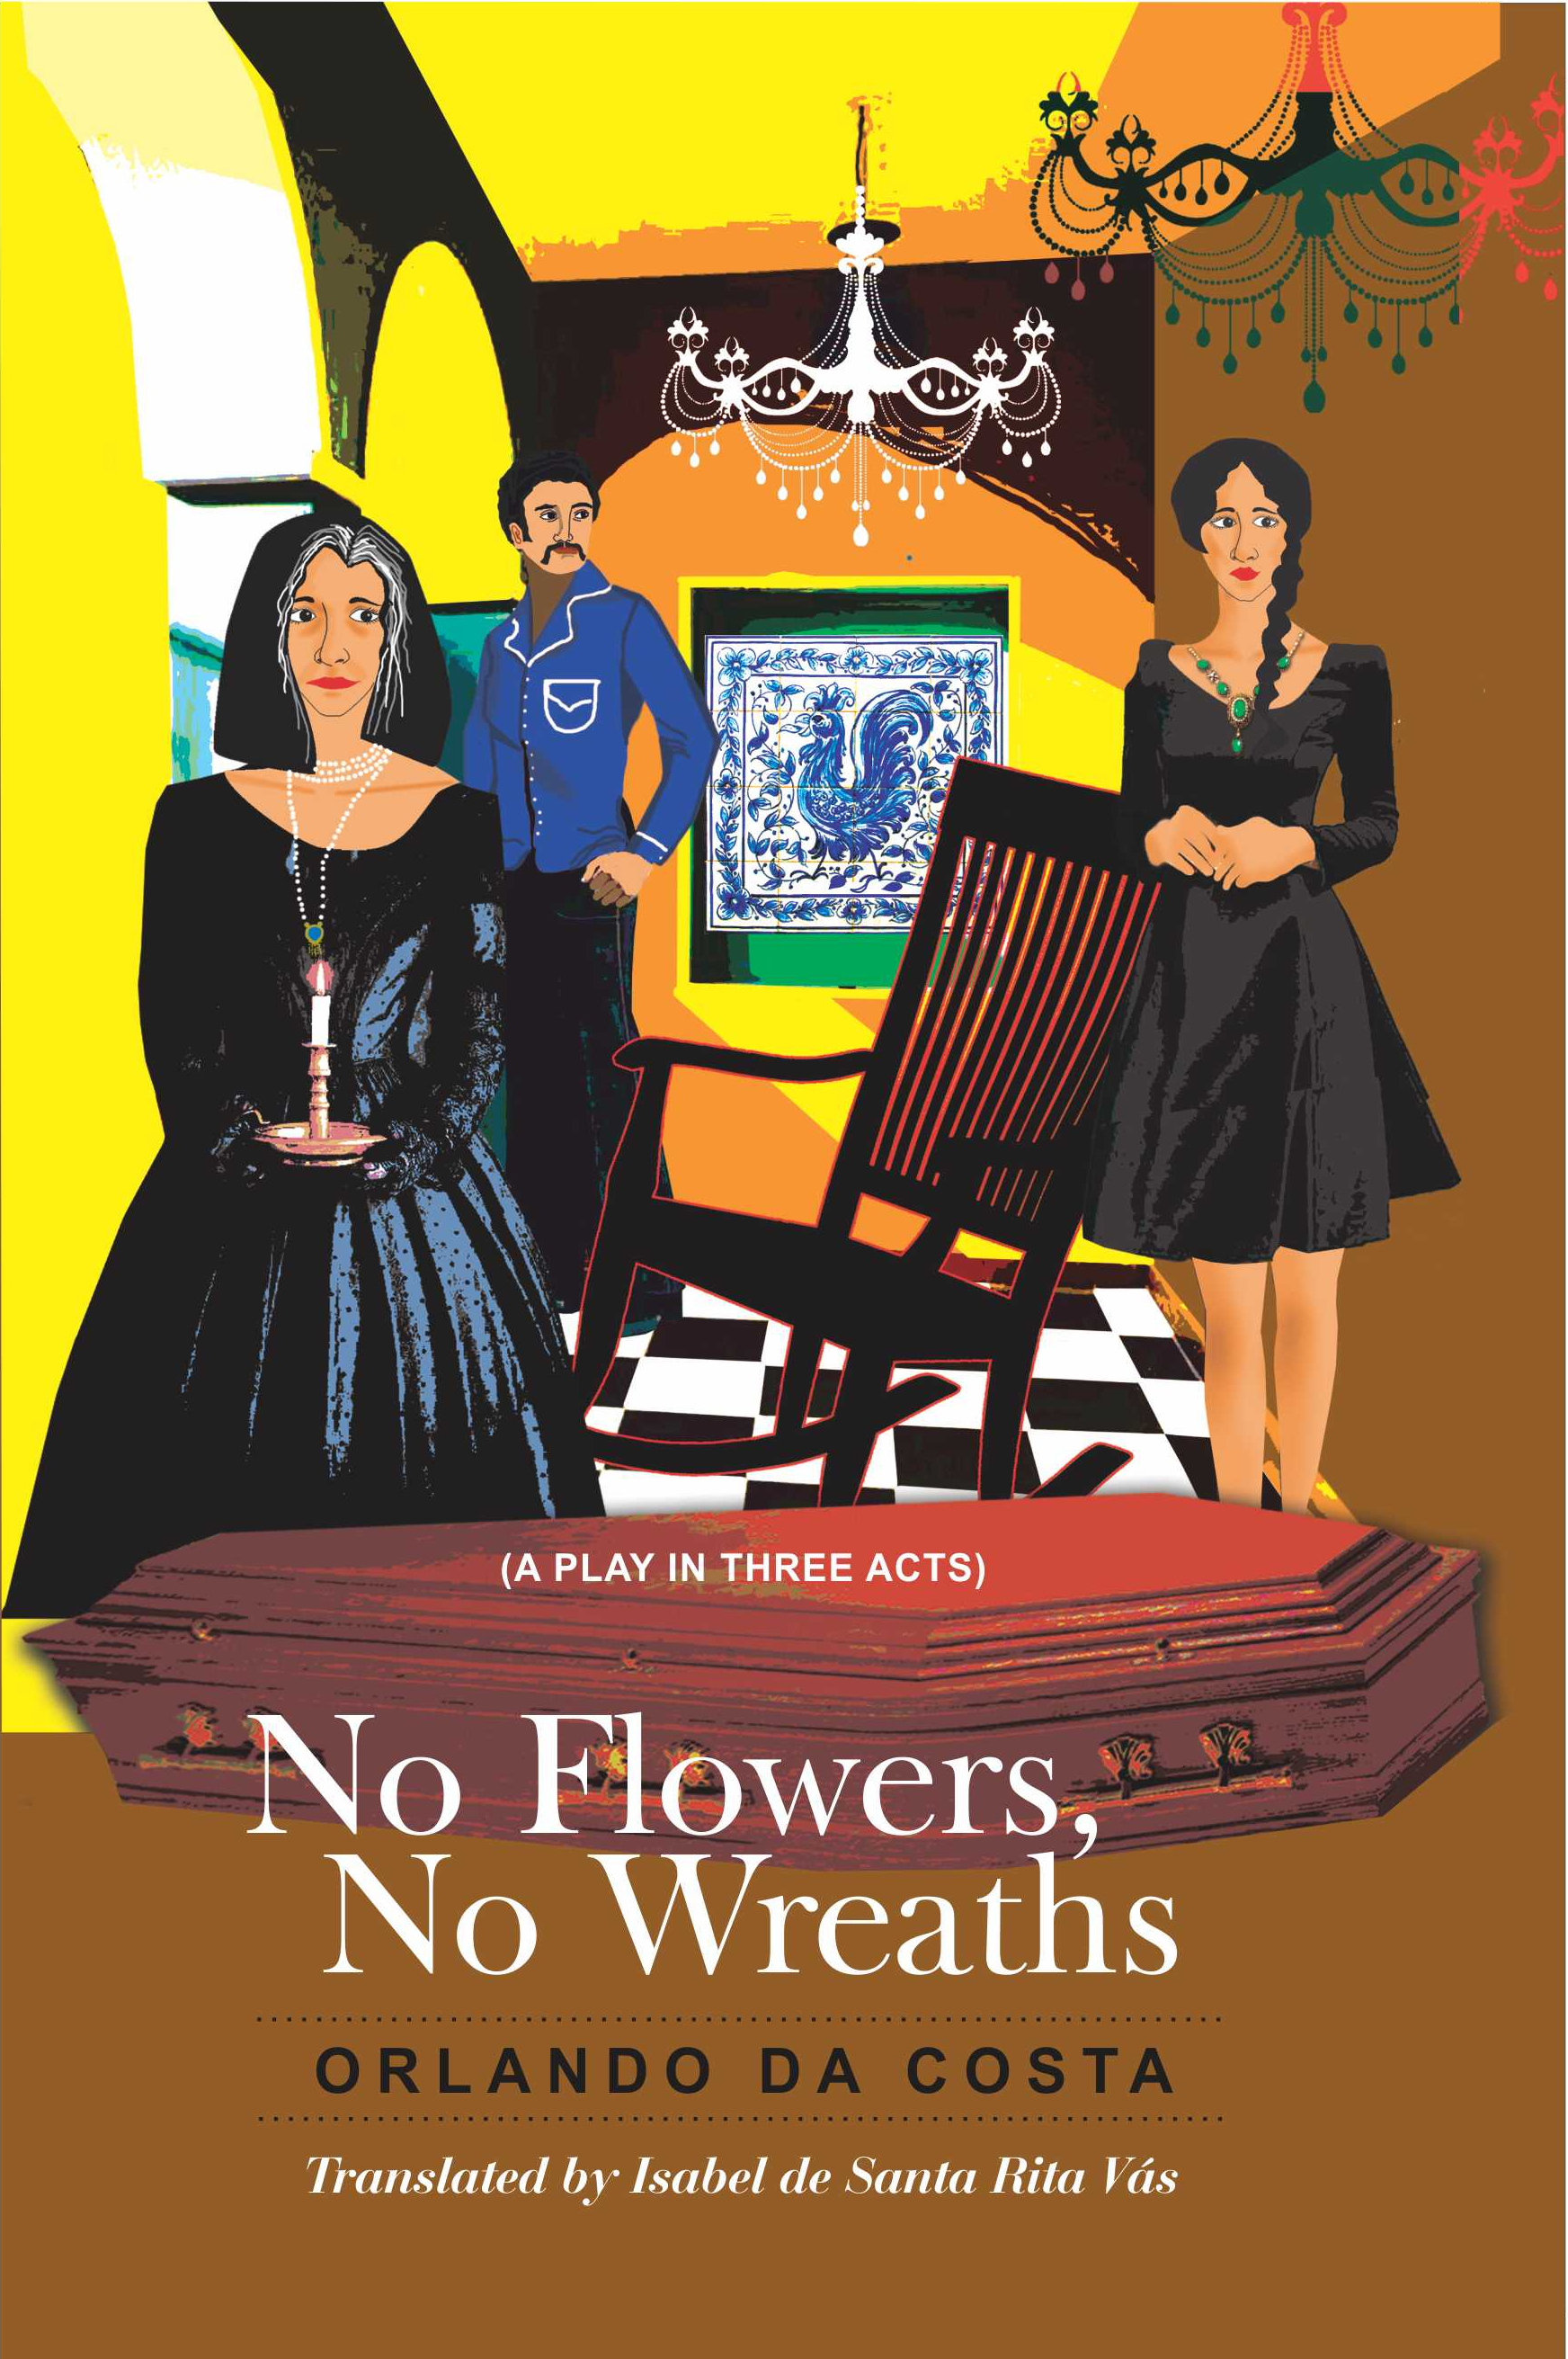 No Flowers, No Wreaths